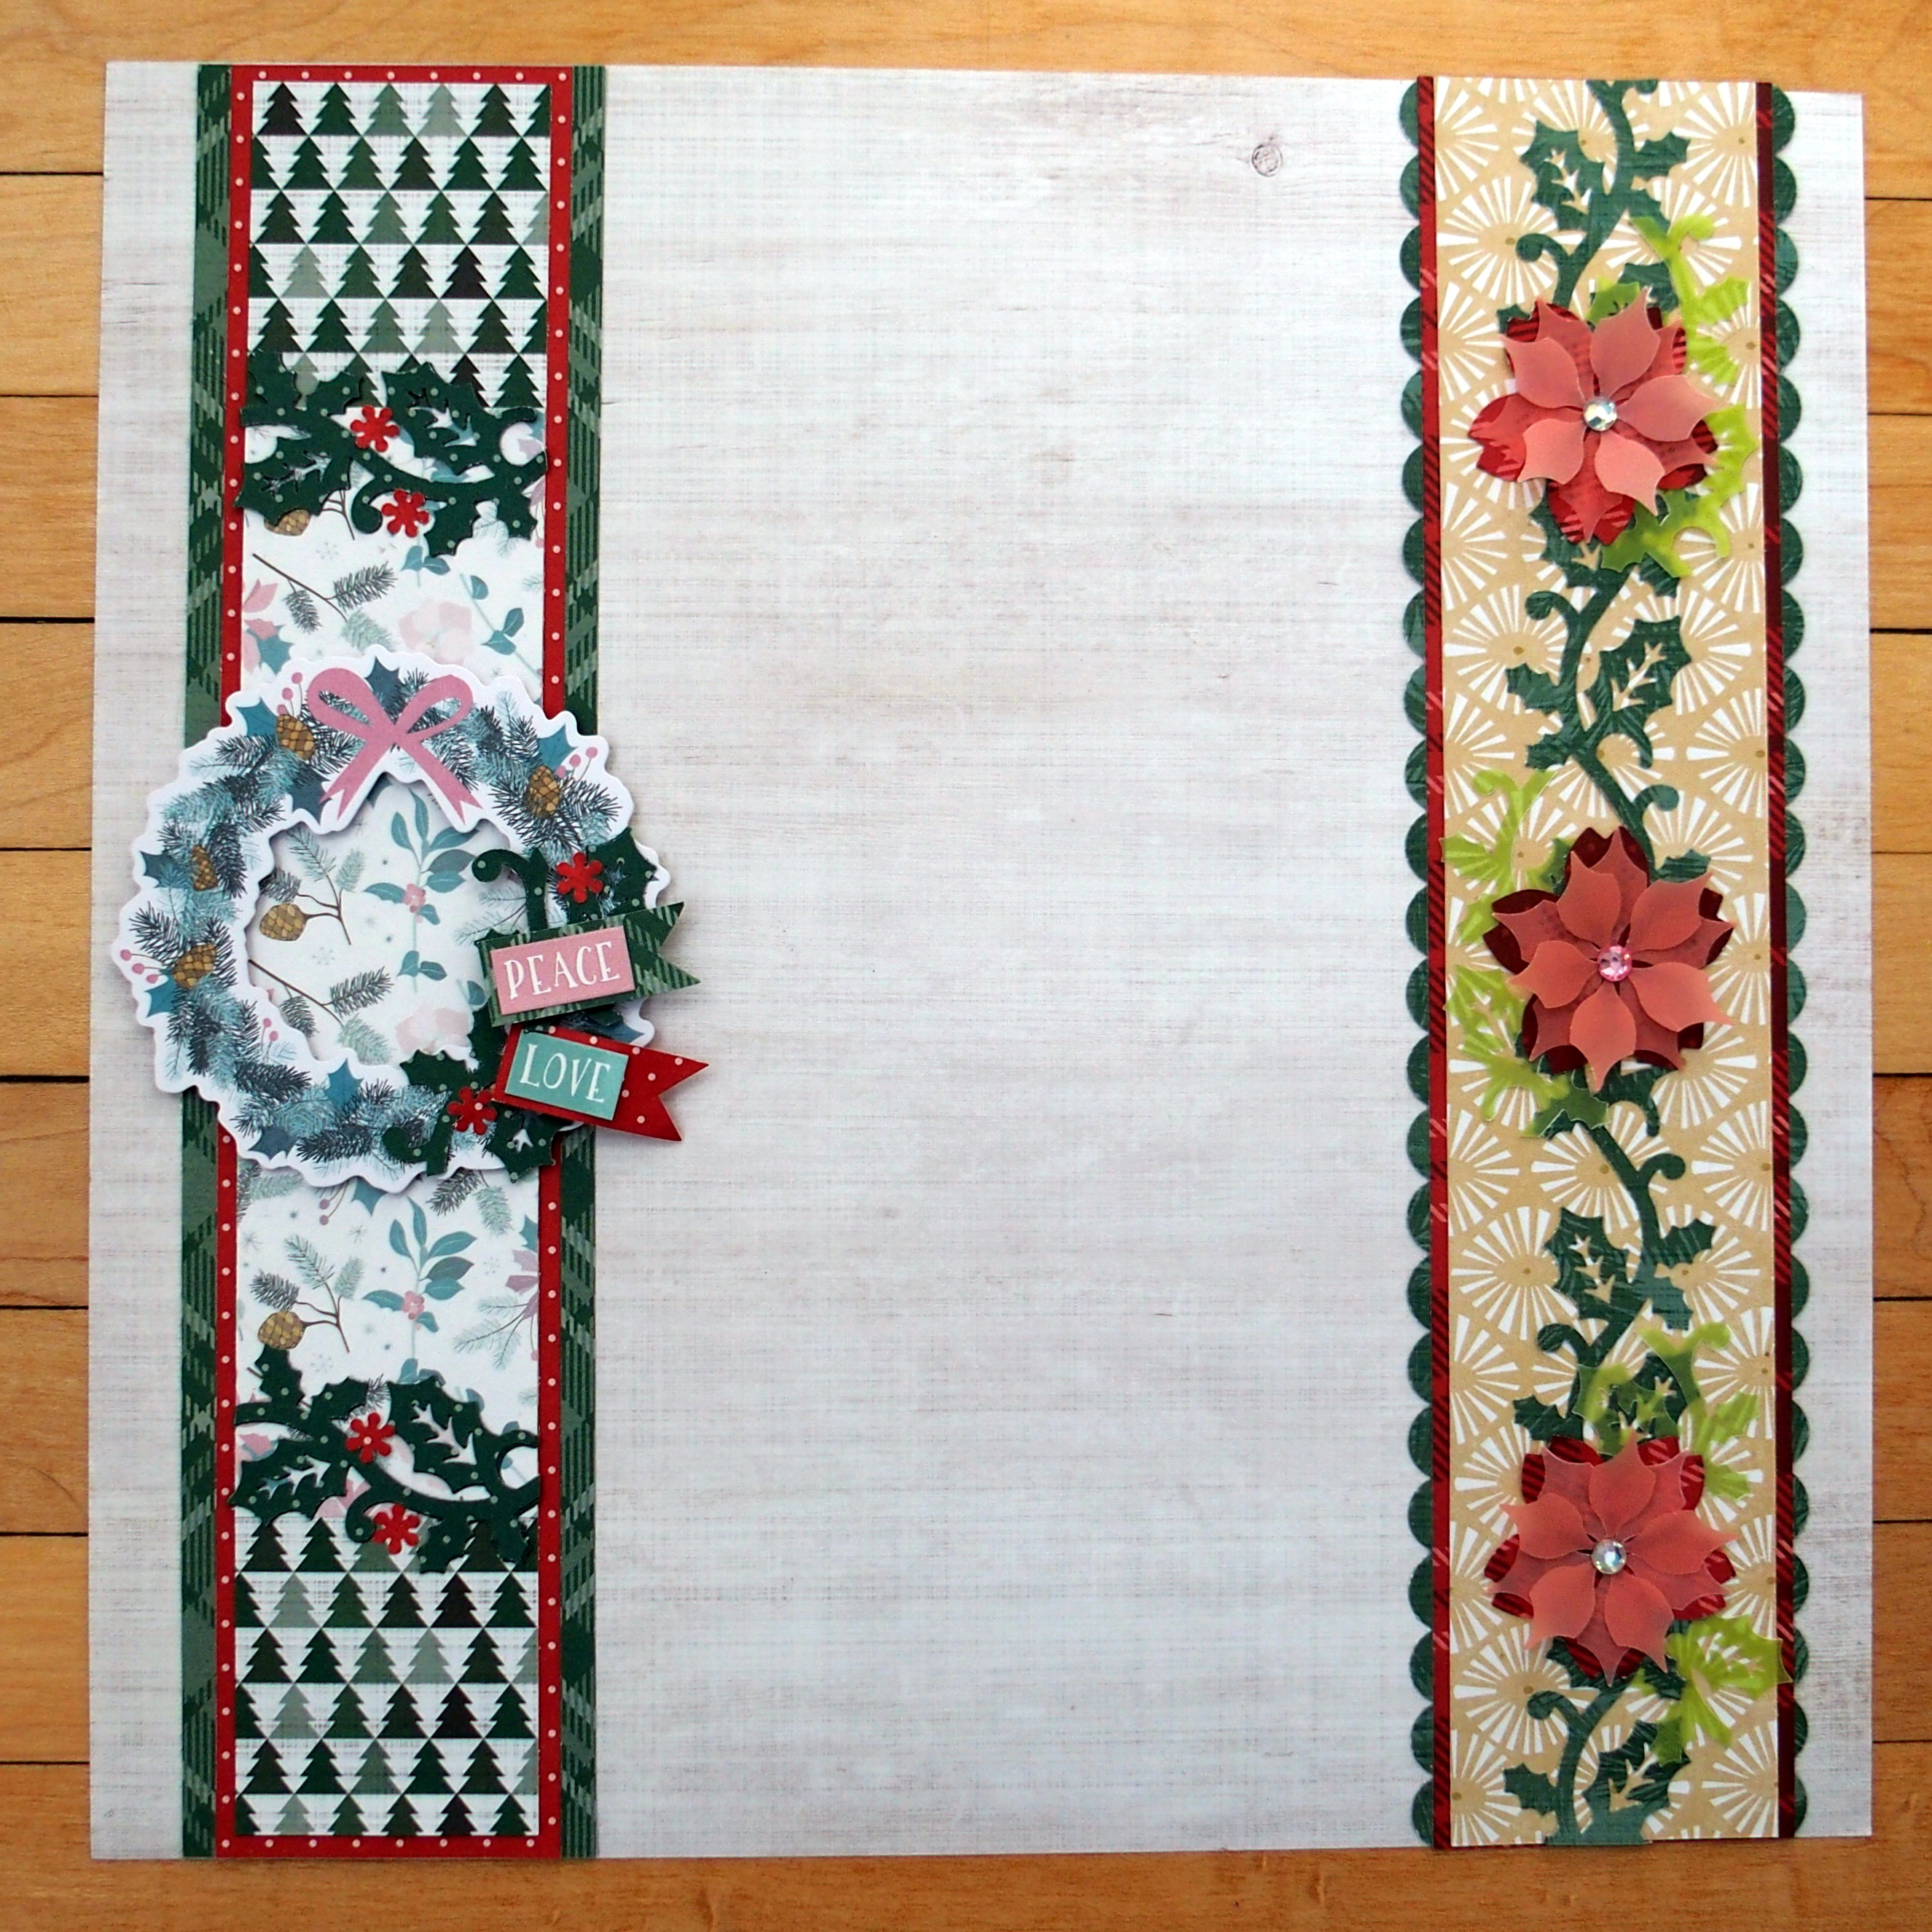 Holly-Punch-Holiday-Scrapbook-Borders-Creative-Memories